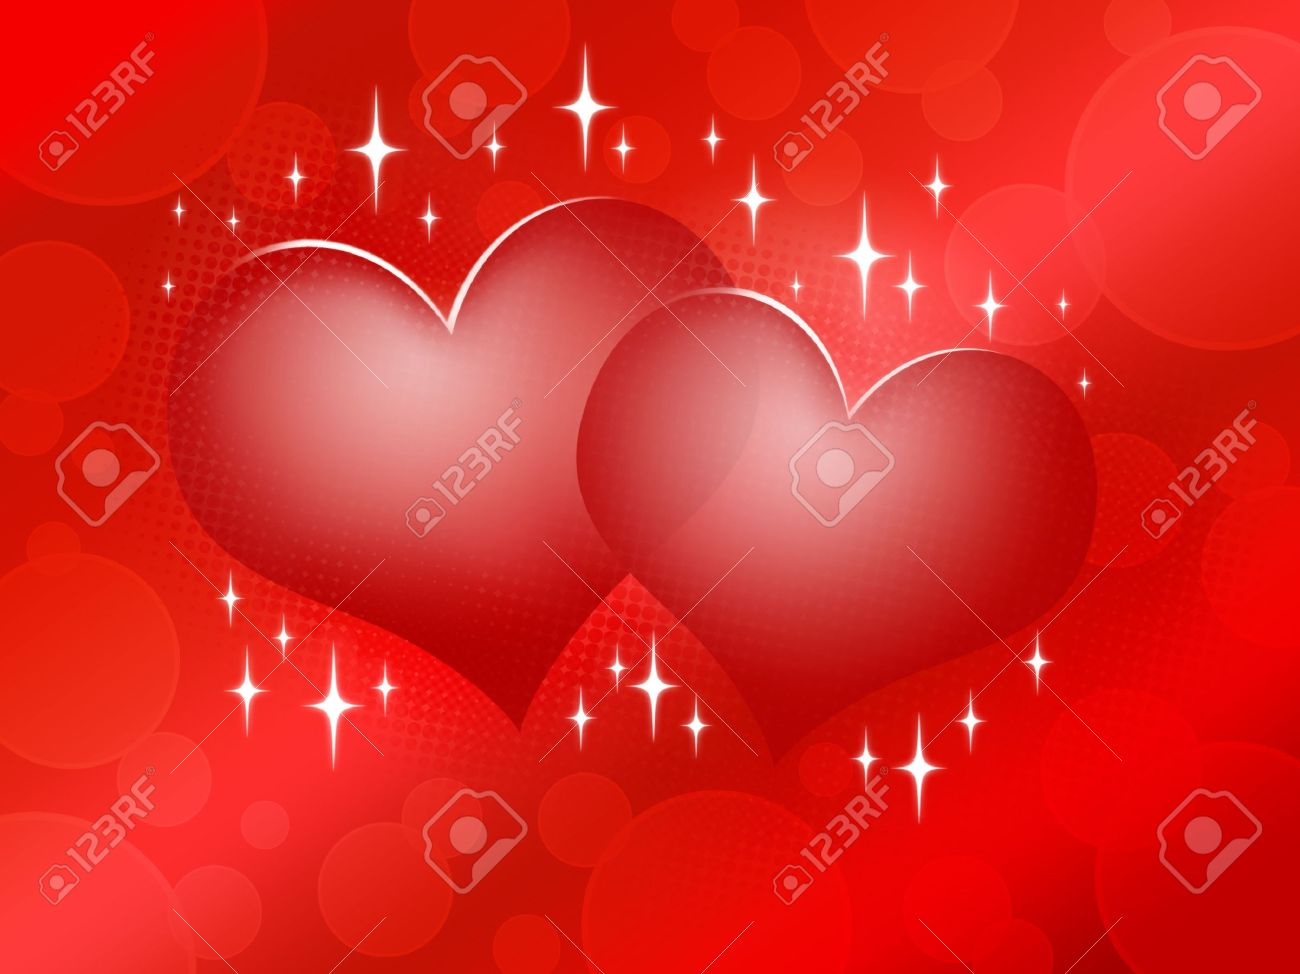 Two Red Hearts On Red Background - Happy Valentine'-s Day Design ...